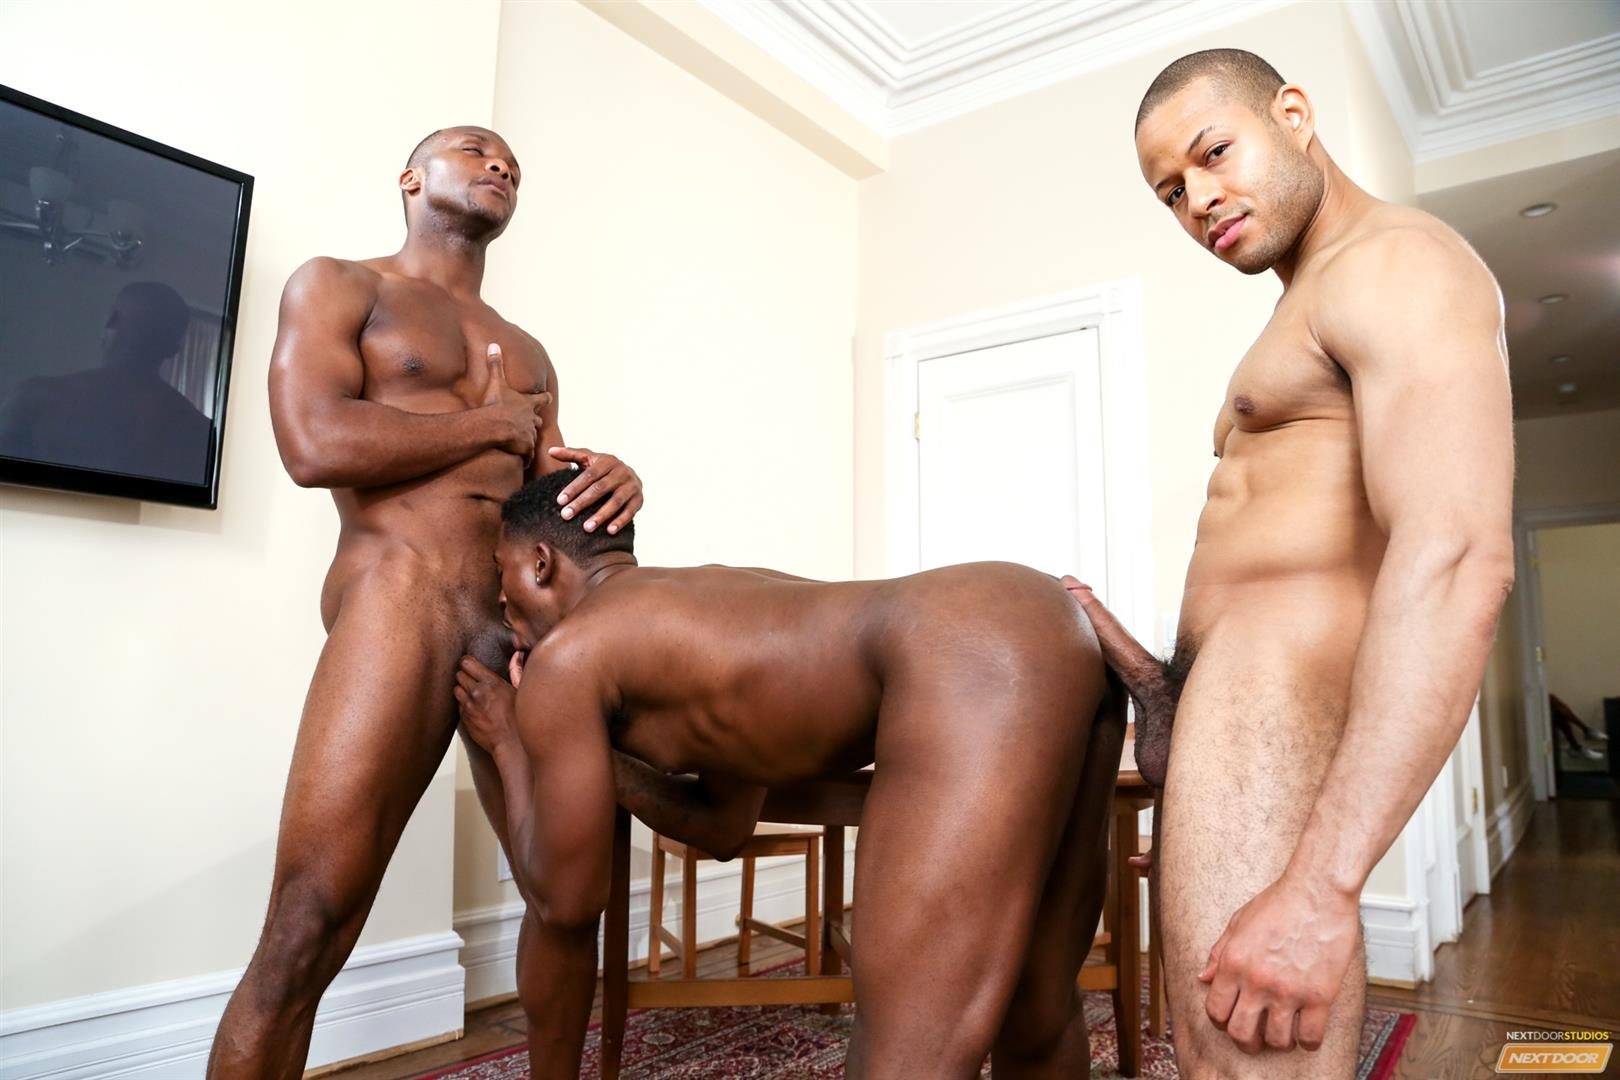 Next Door Ebony Krave Moore and Andre Donovan and Rex Cobra Big Black Cock Amateur Gay Porn 12 Three Black Guys Playing Strip Dominoes With Their Big Black Cocks